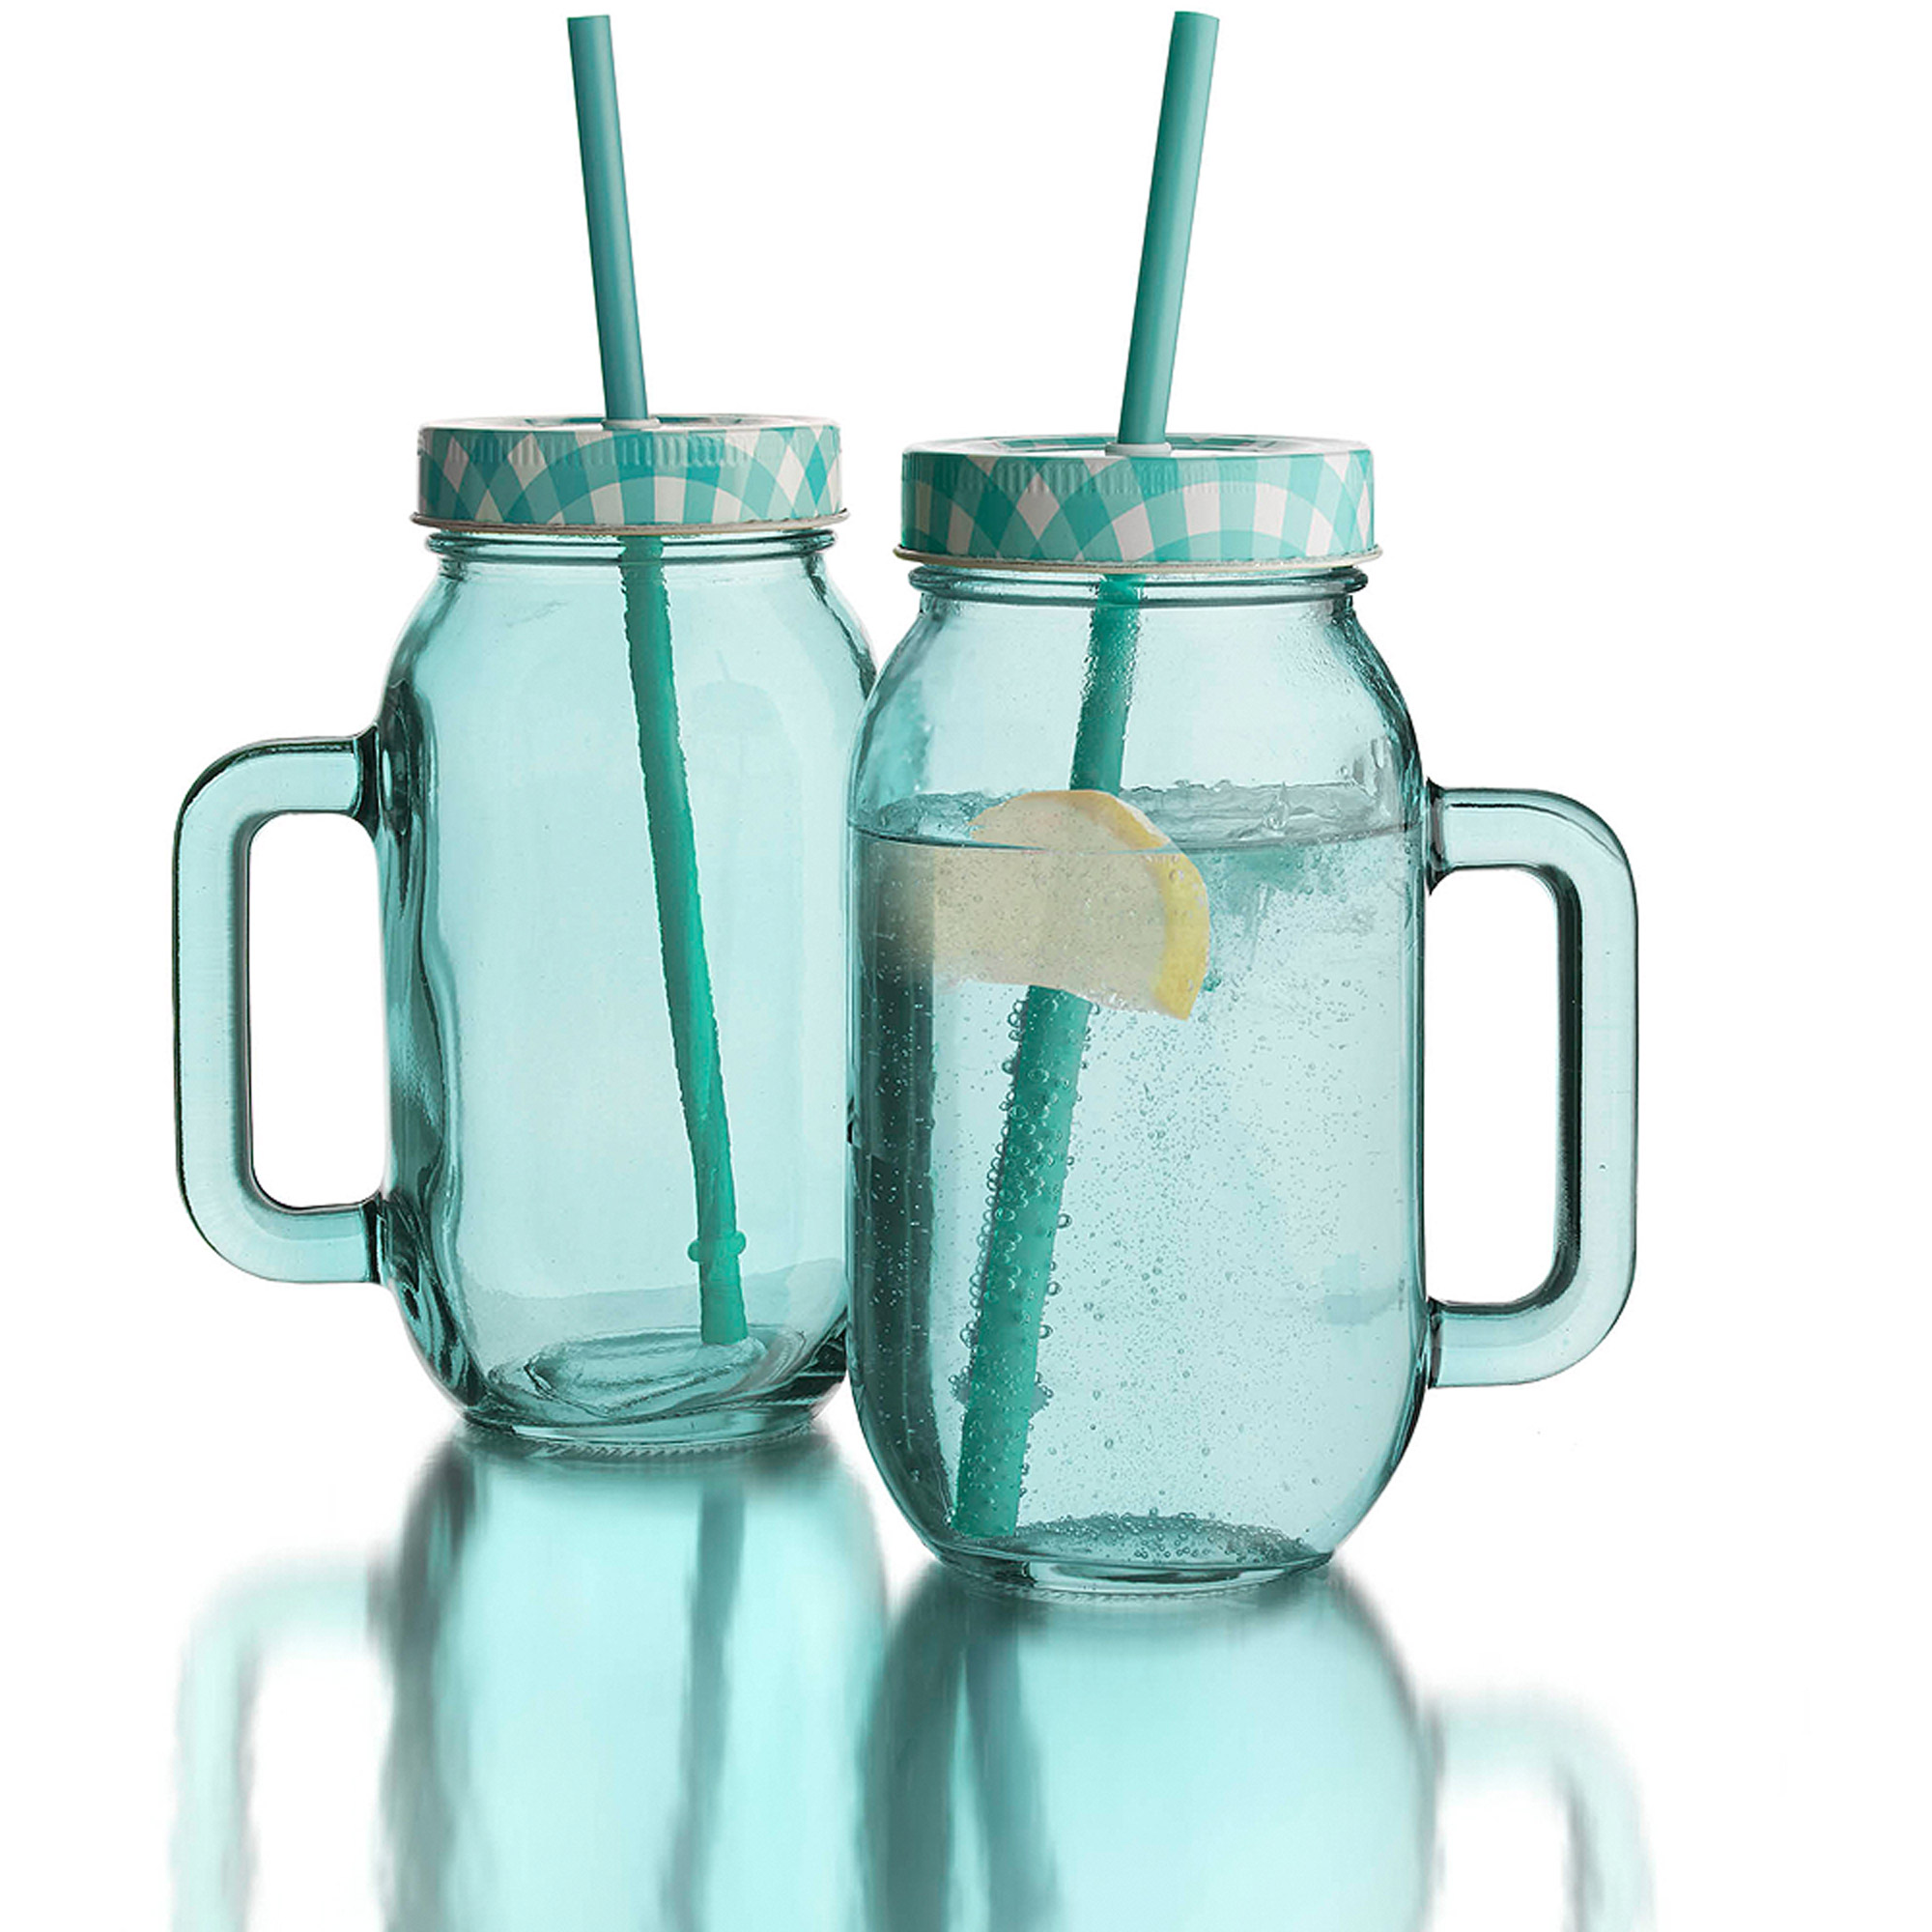 "Blue Set Of 2 Colored Jar With Lid, 24 Oz, 2.5"" X 3.375"" X 6.25"""